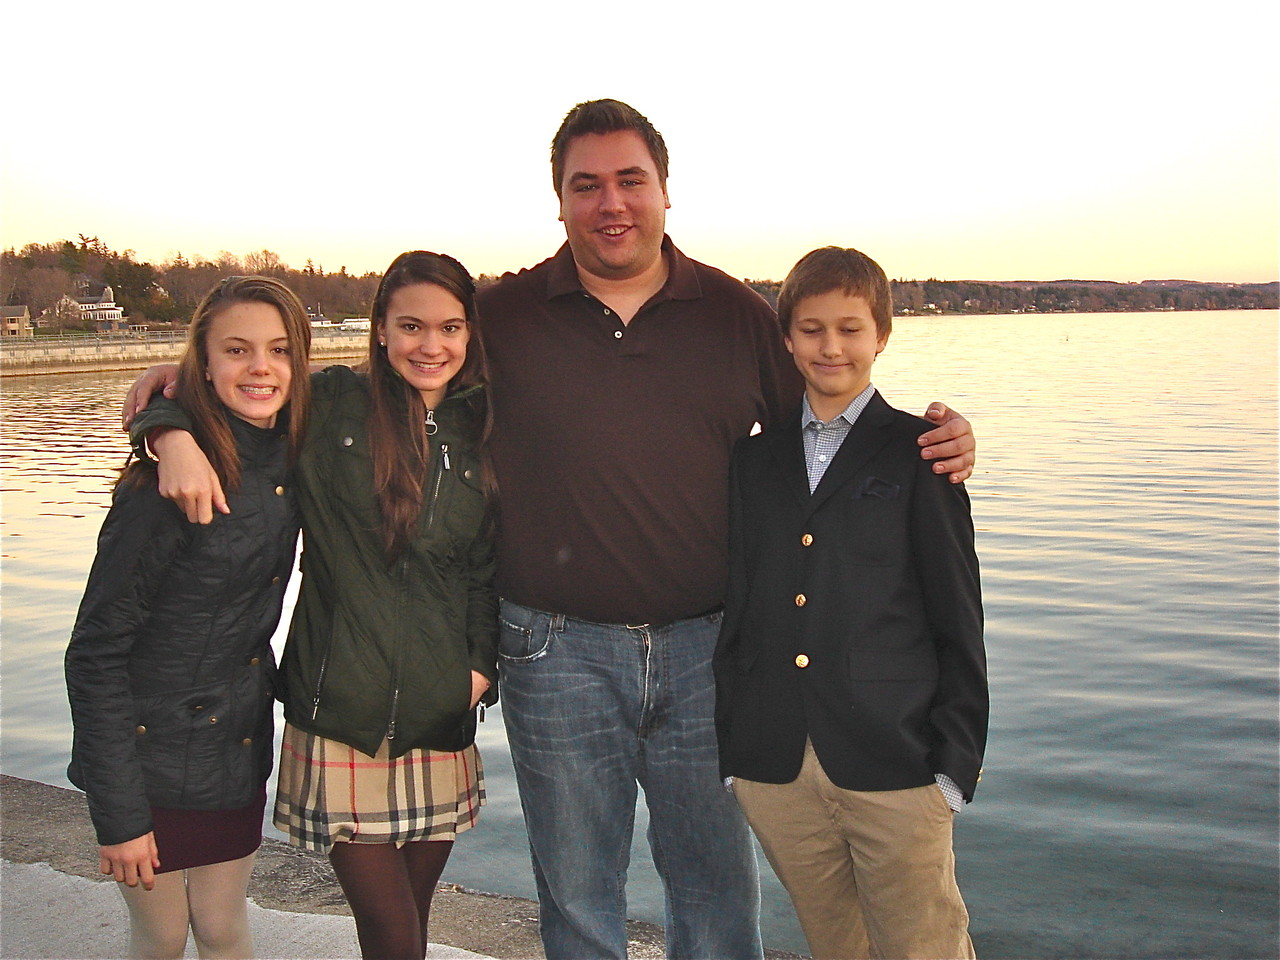 The cousins Kate, Ellie, Greg, & Jack, Skaneateles Lake.